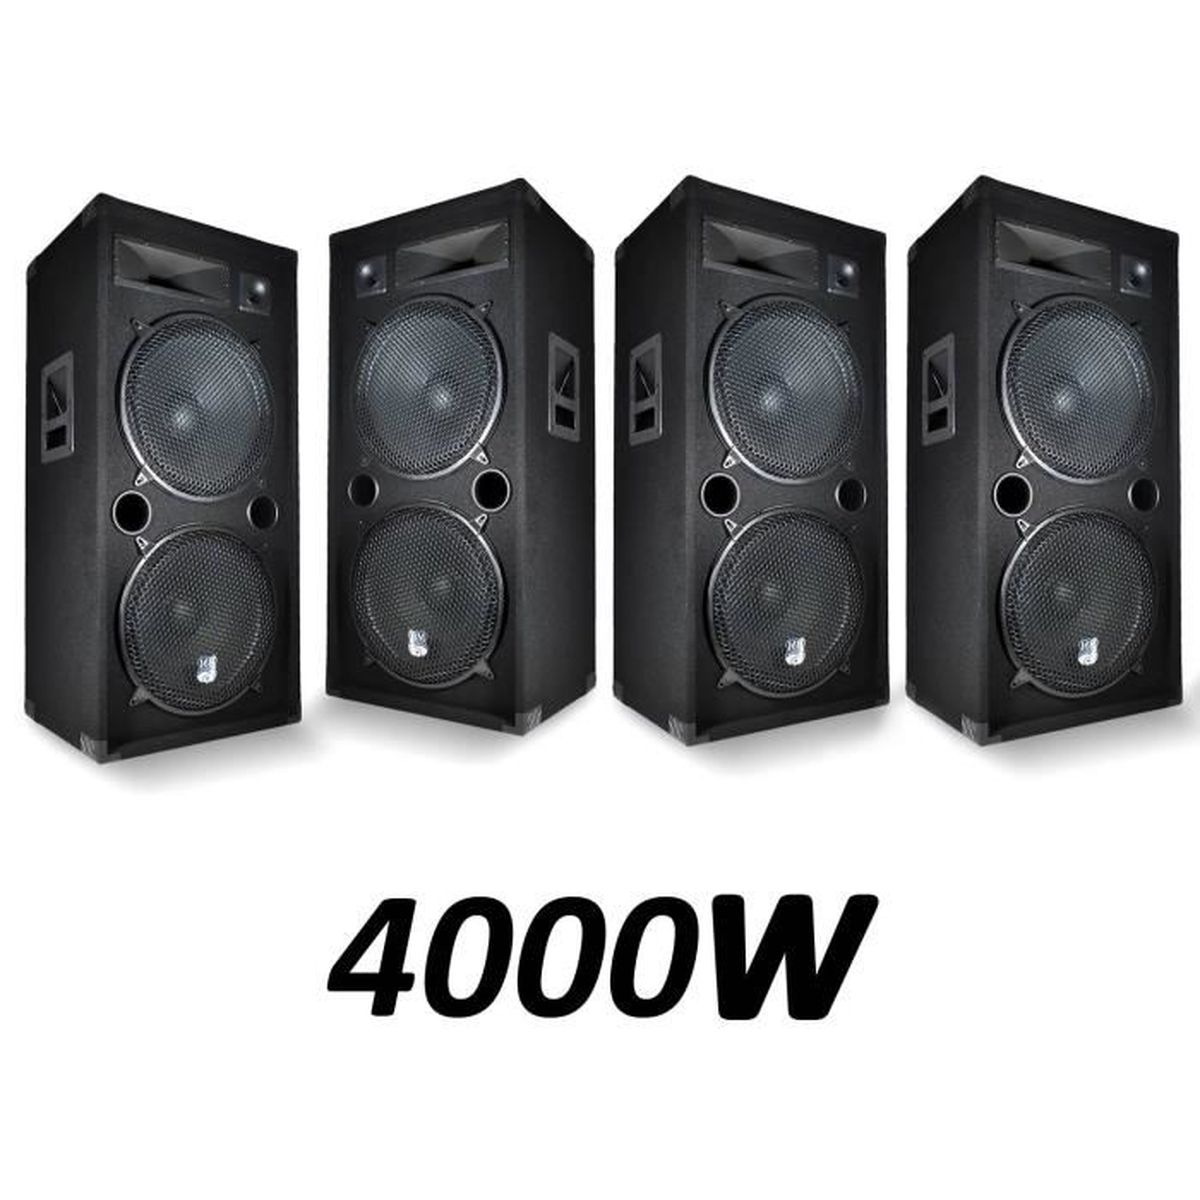 4 enceintes passives sono pa 2x15 38cm 4000w 3 voies bassreflex bm sonic lsc215 enceinte et. Black Bedroom Furniture Sets. Home Design Ideas